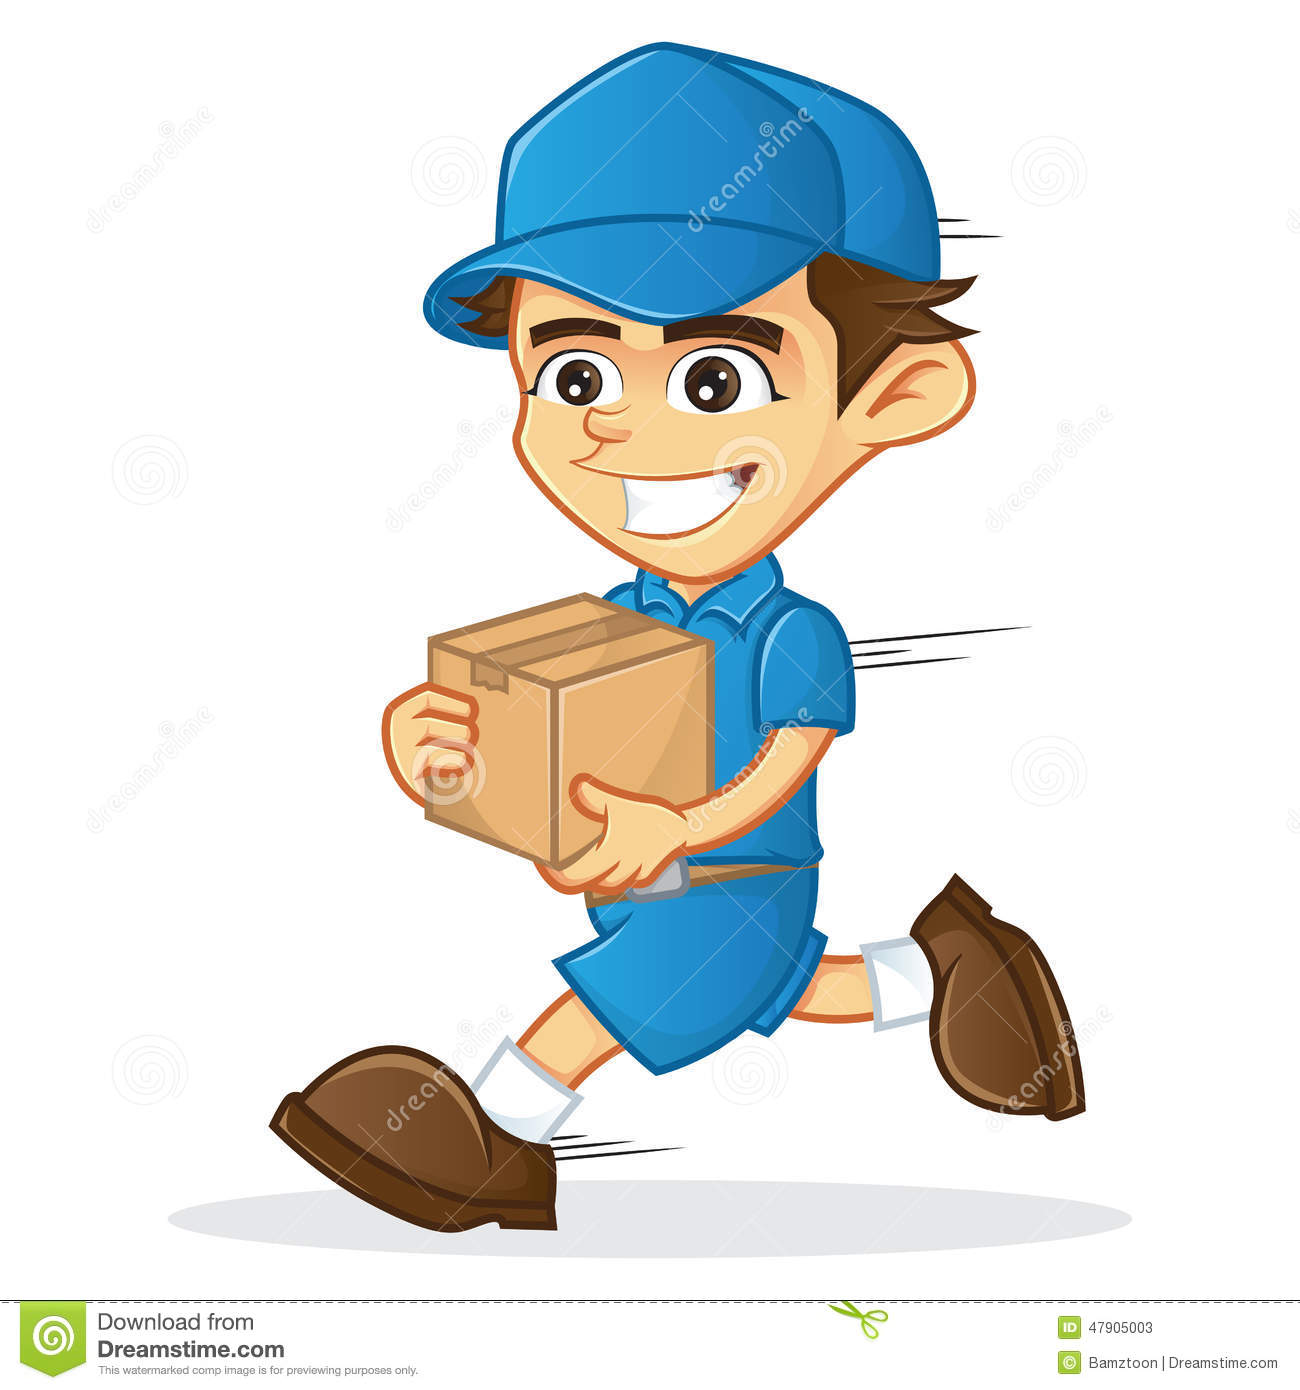 clipart delivery man - photo #12